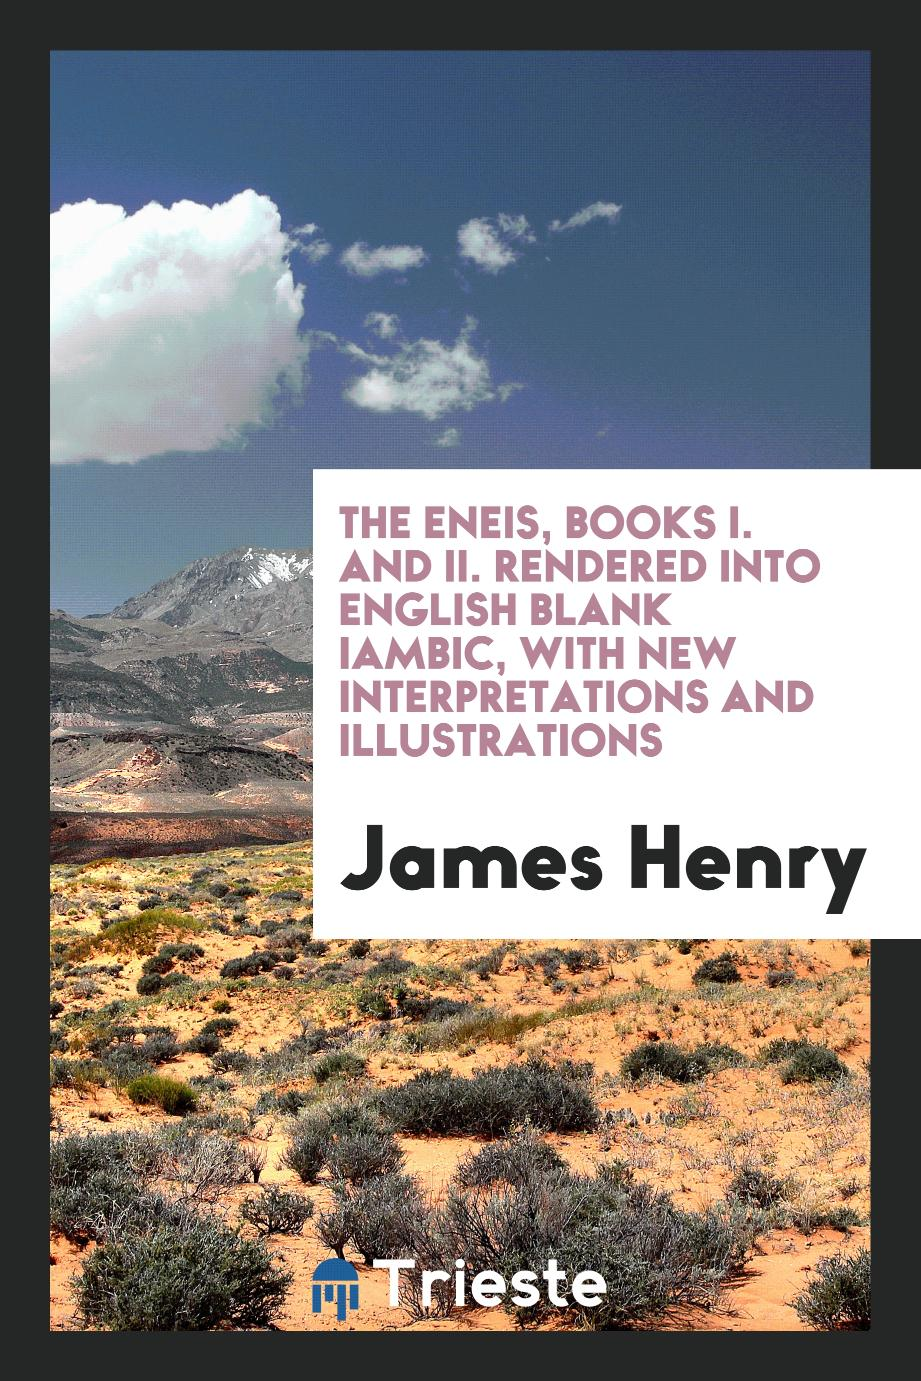 The Eneis, Books I. and II. Rendered Into English Blank Iambic, with New Interpretations and Illustrations